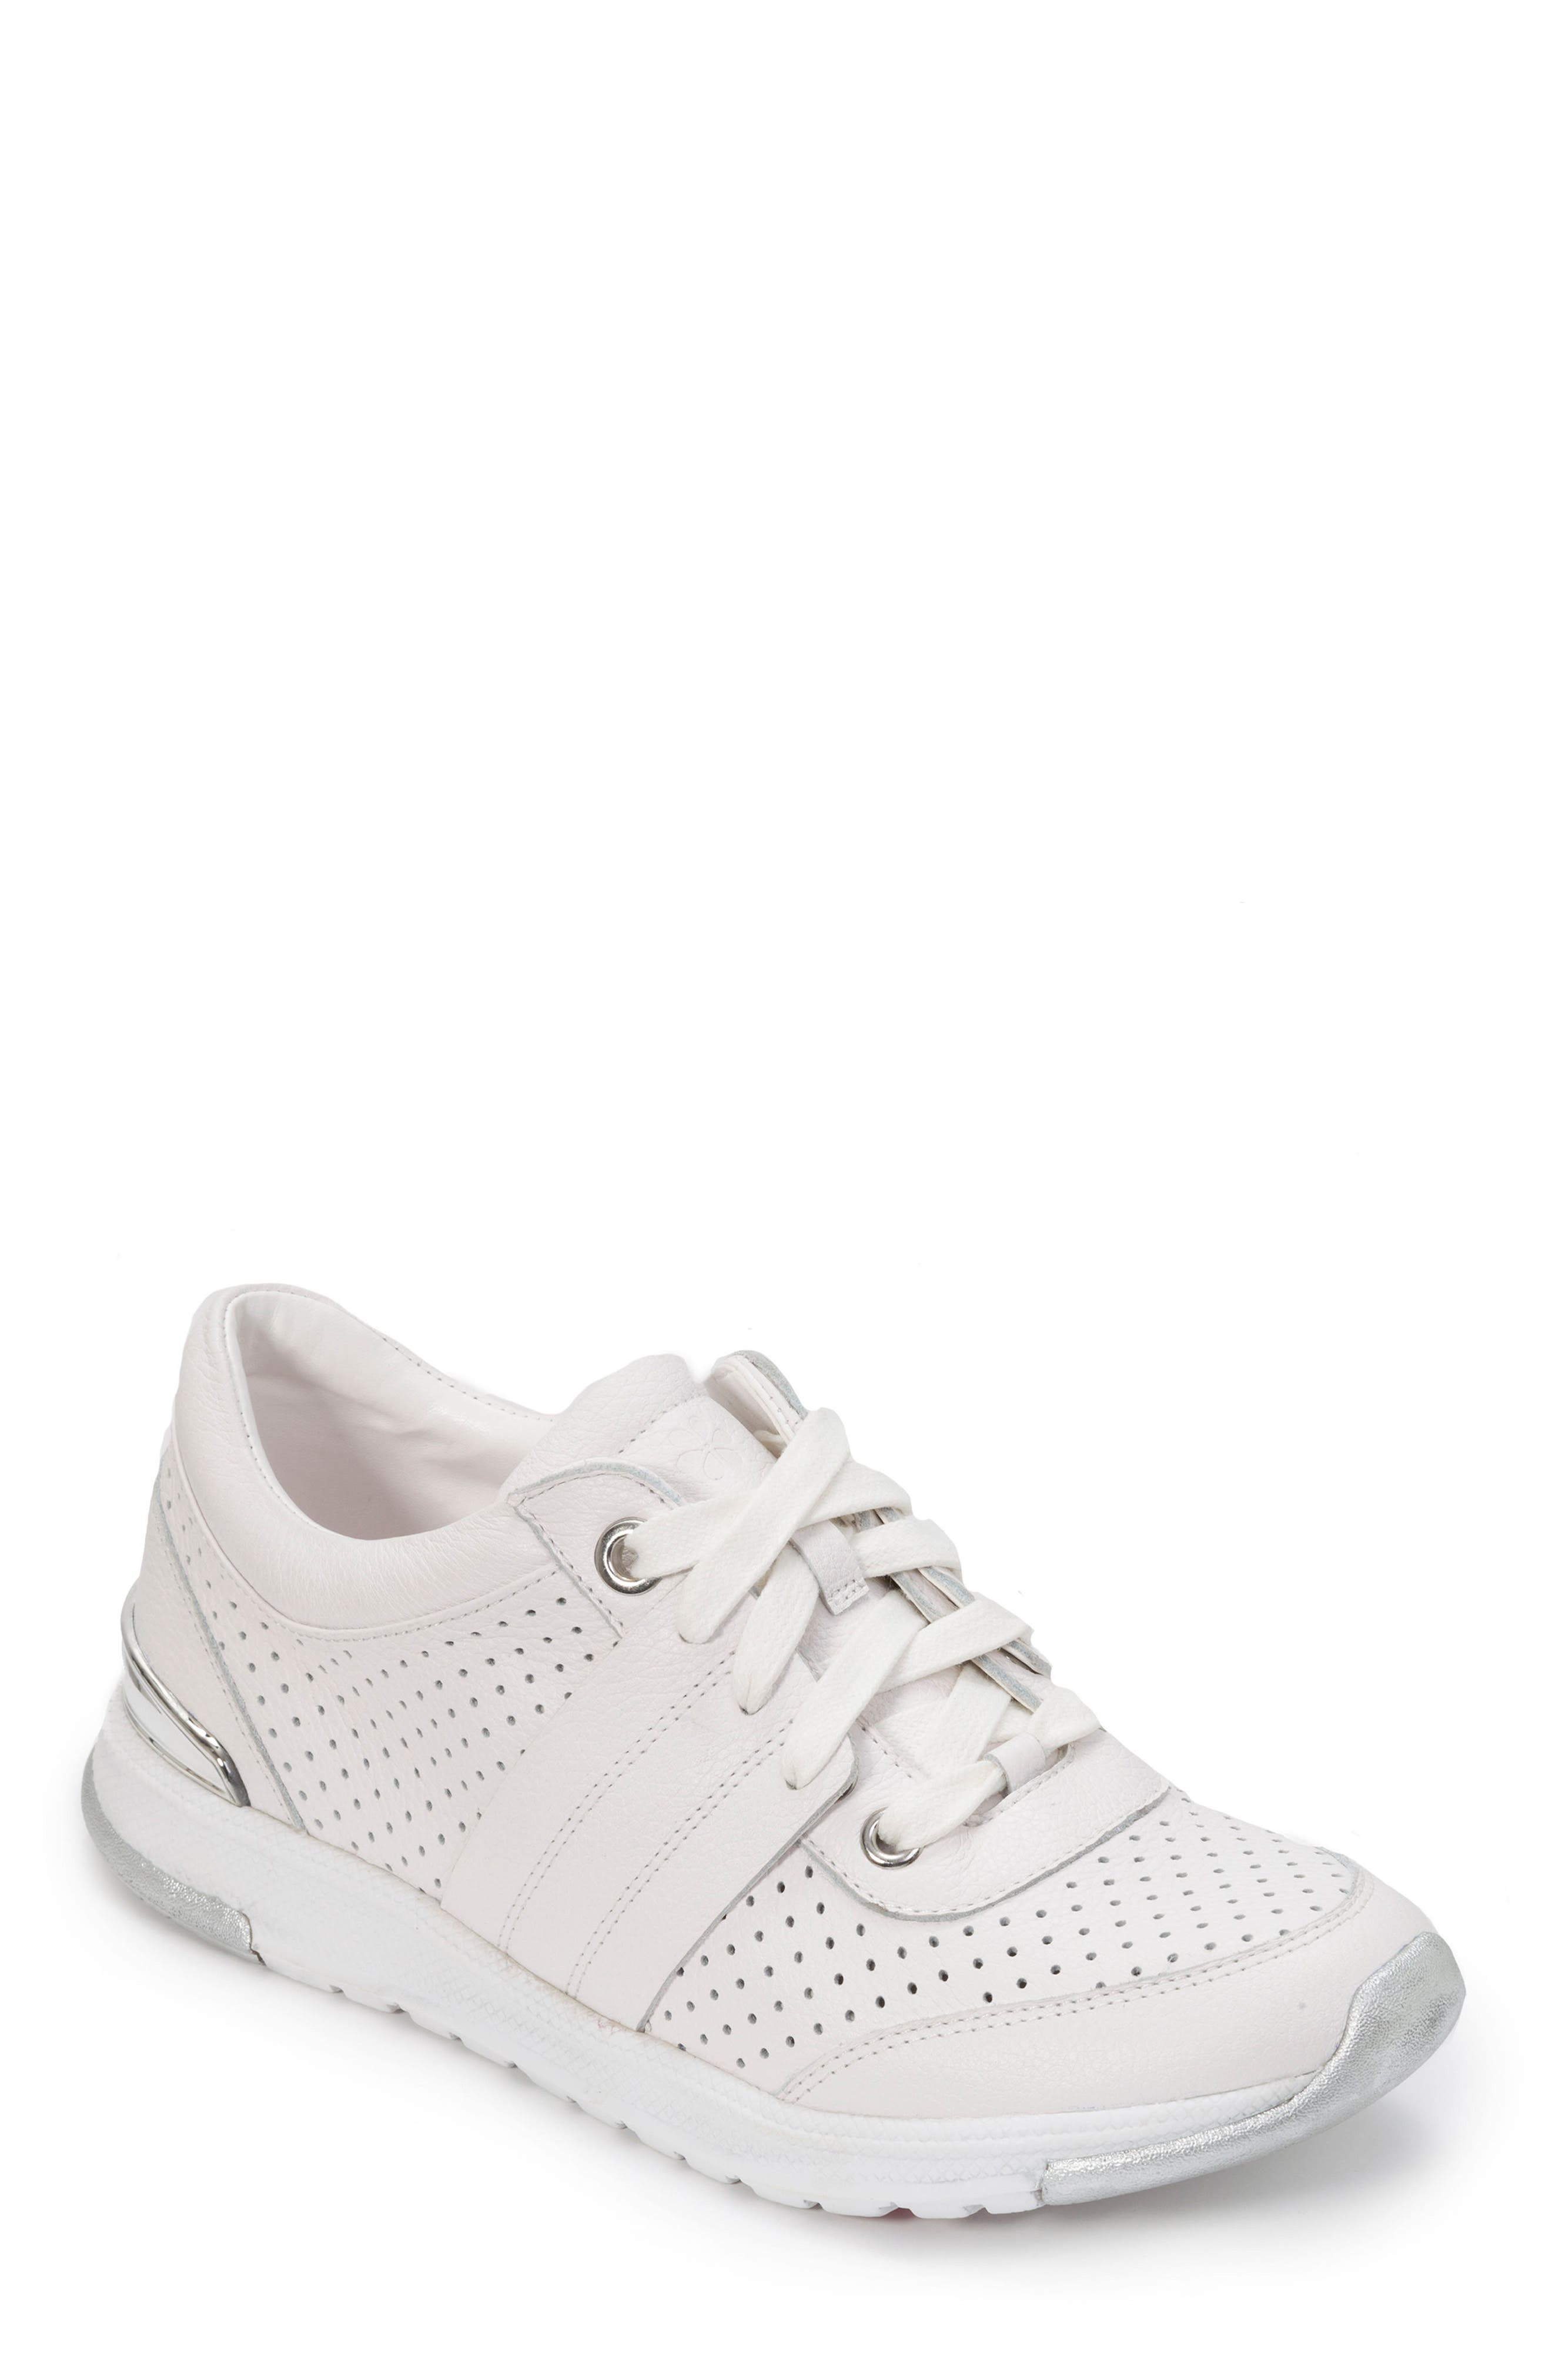 FOOT PETALS Bea Sneaker in White Leather